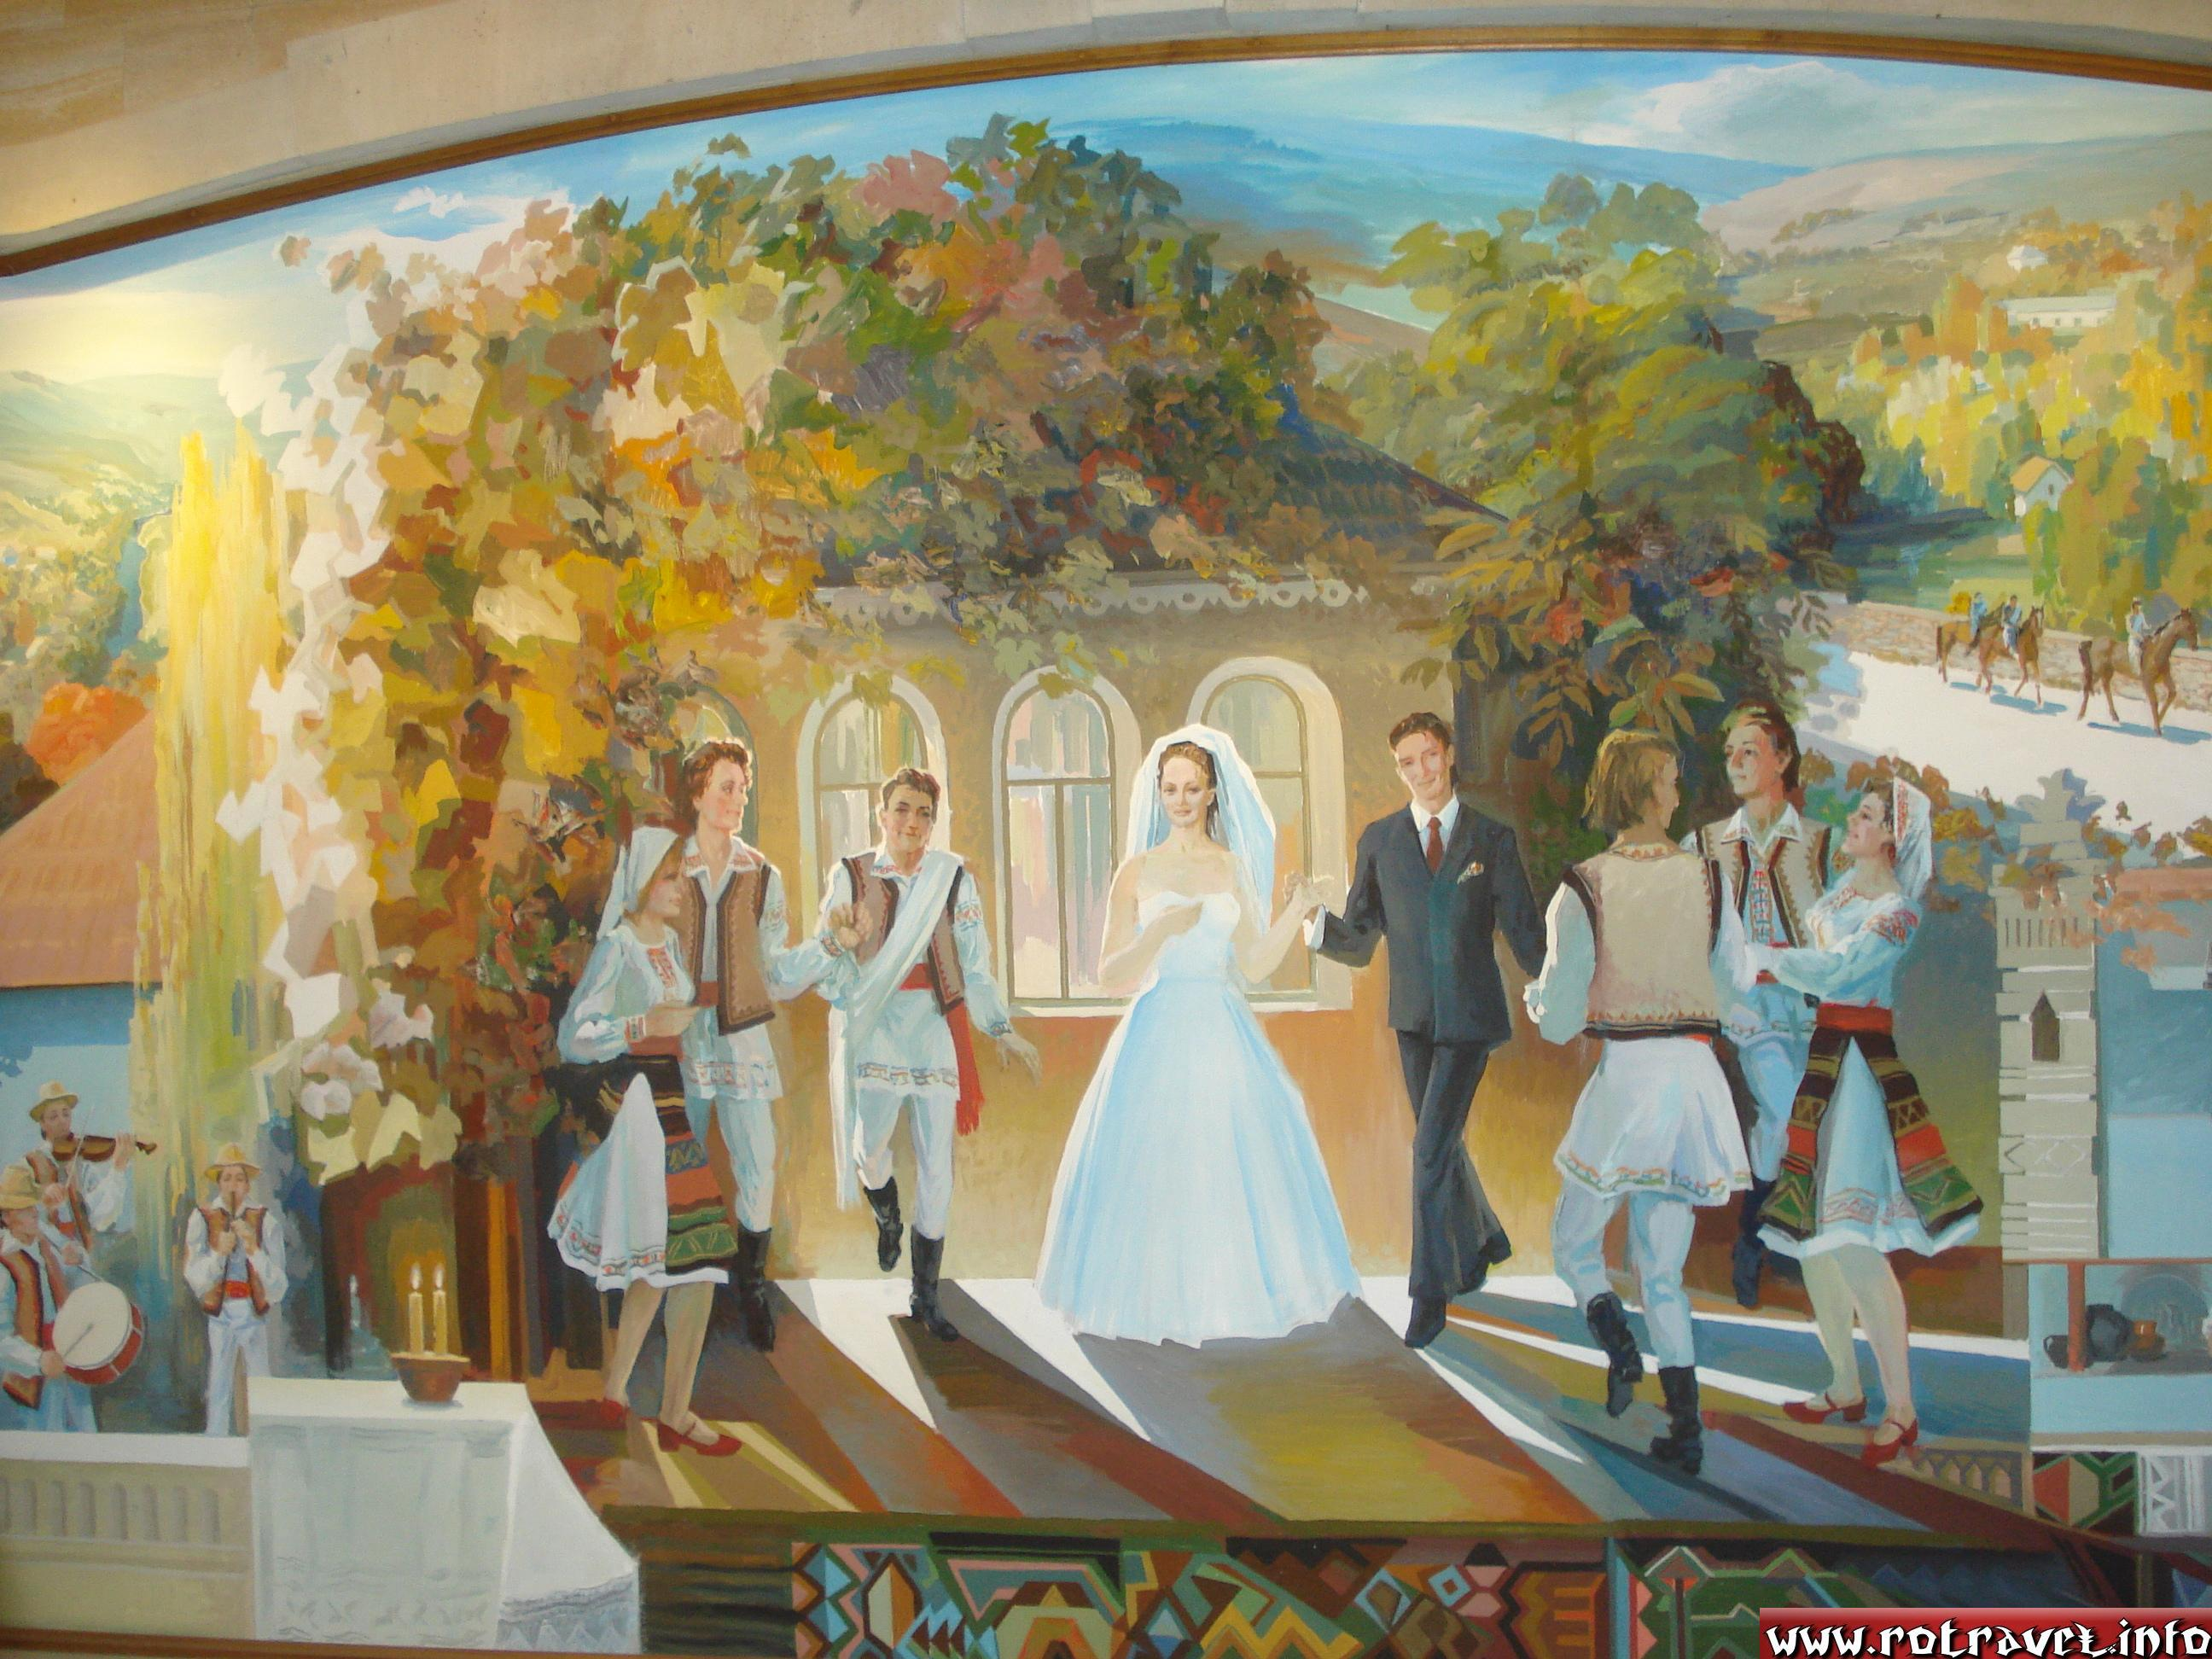 "A picture of ""Moldavian wedding"" painted on a wall."